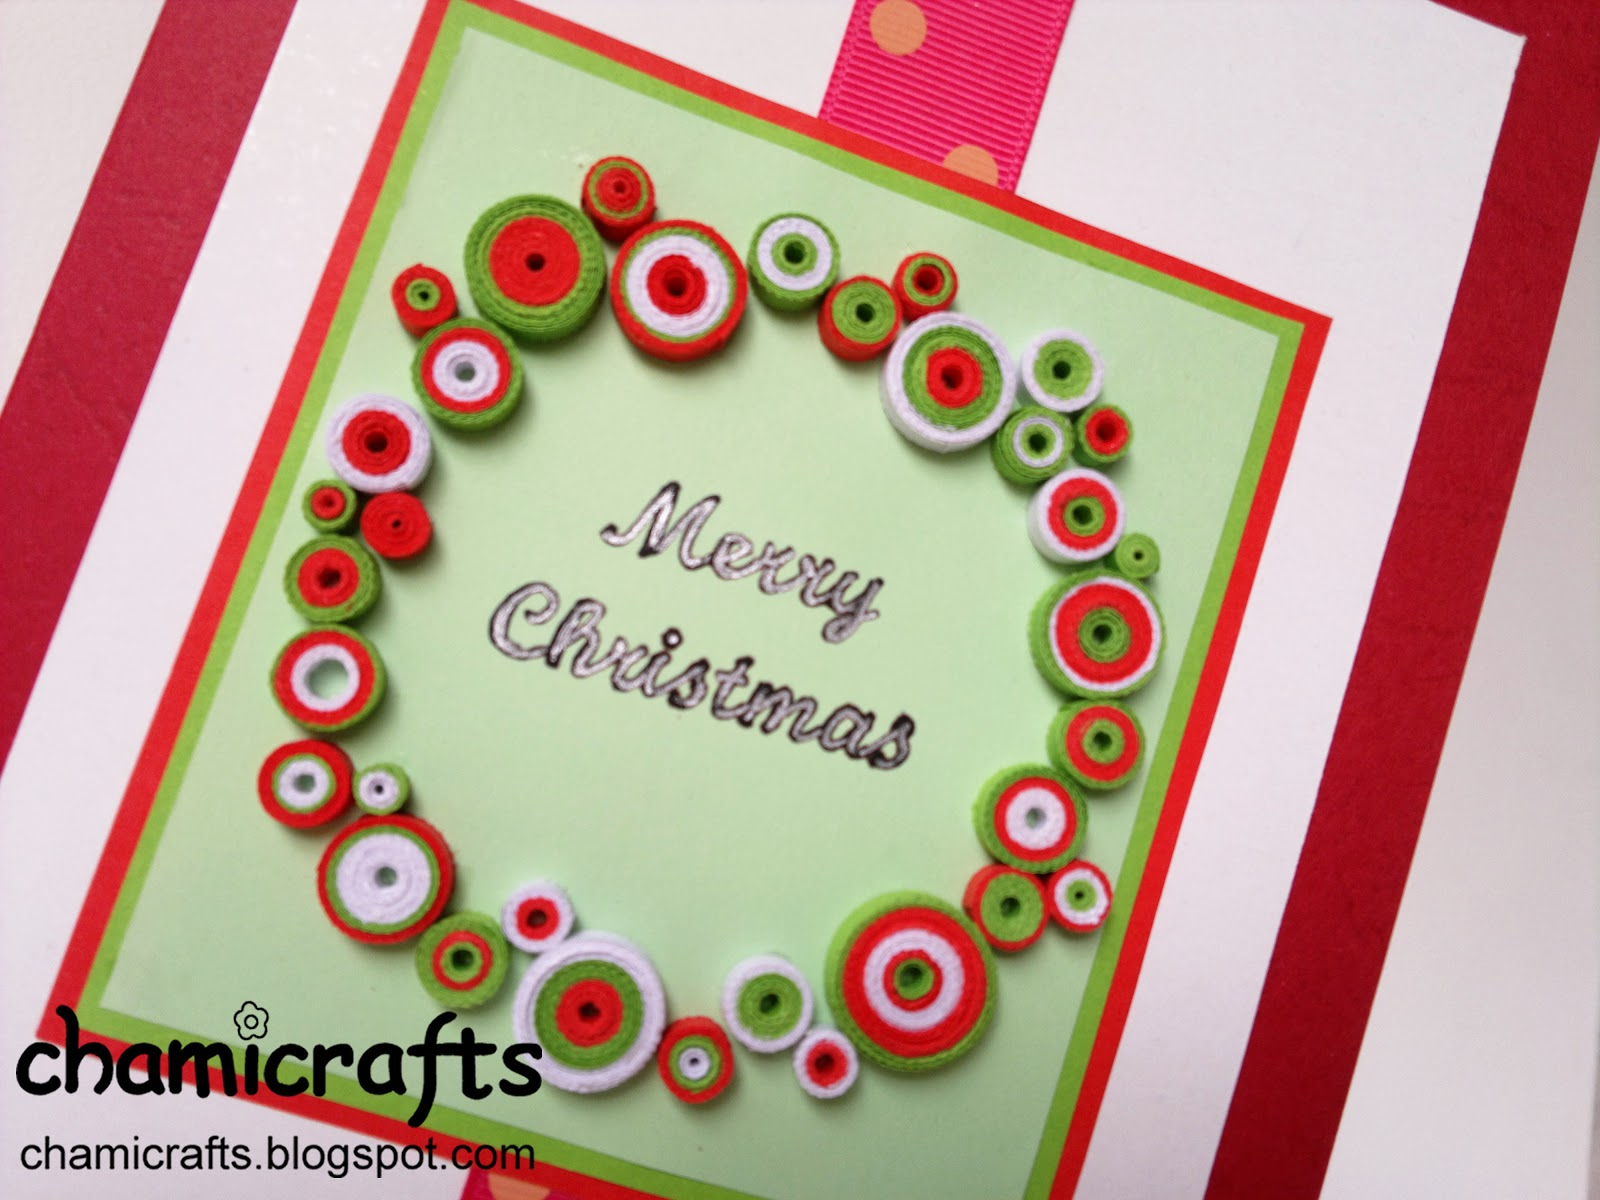 Best Place To Order Christmas Photo Cards